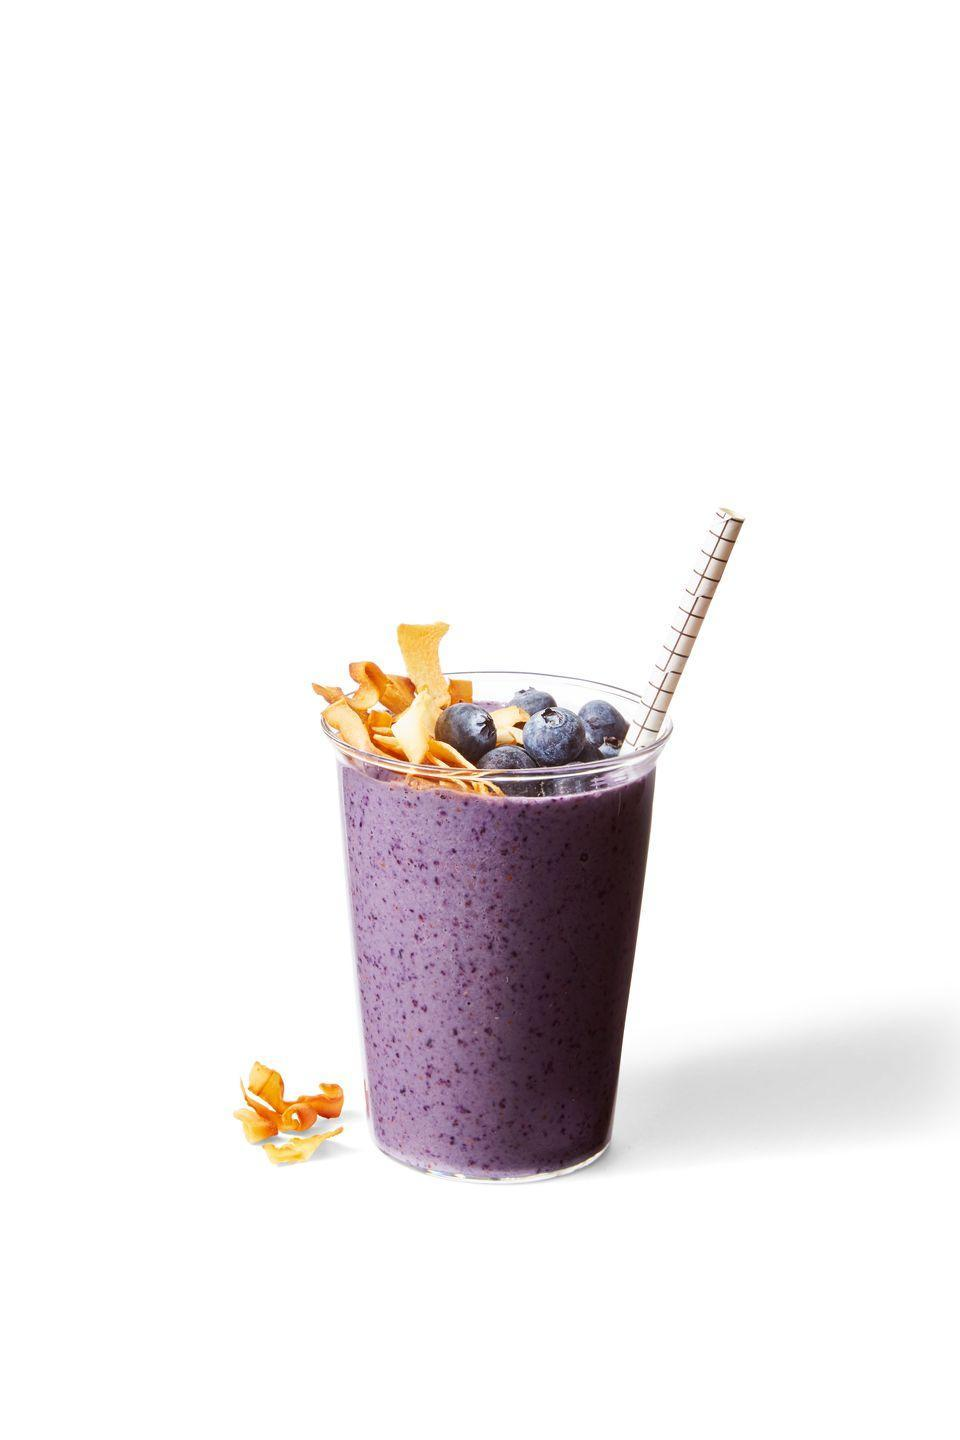 "<p>With frozen berries and almond butter, this is like PB&J in smoothie form. Yum!</p><p><em><a href=""https://www.goodhousekeeping.com/food-recipes/a34236605/how-to-make-a-smoothie-recipe/"" rel=""nofollow noopener"" target=""_blank"" data-ylk=""slk:Get the recipe for Blueberry-Banana-Nut Smoothie »"" class=""link rapid-noclick-resp"">Get the recipe for Blueberry-Banana-Nut Smoothie »</a></em></p>"